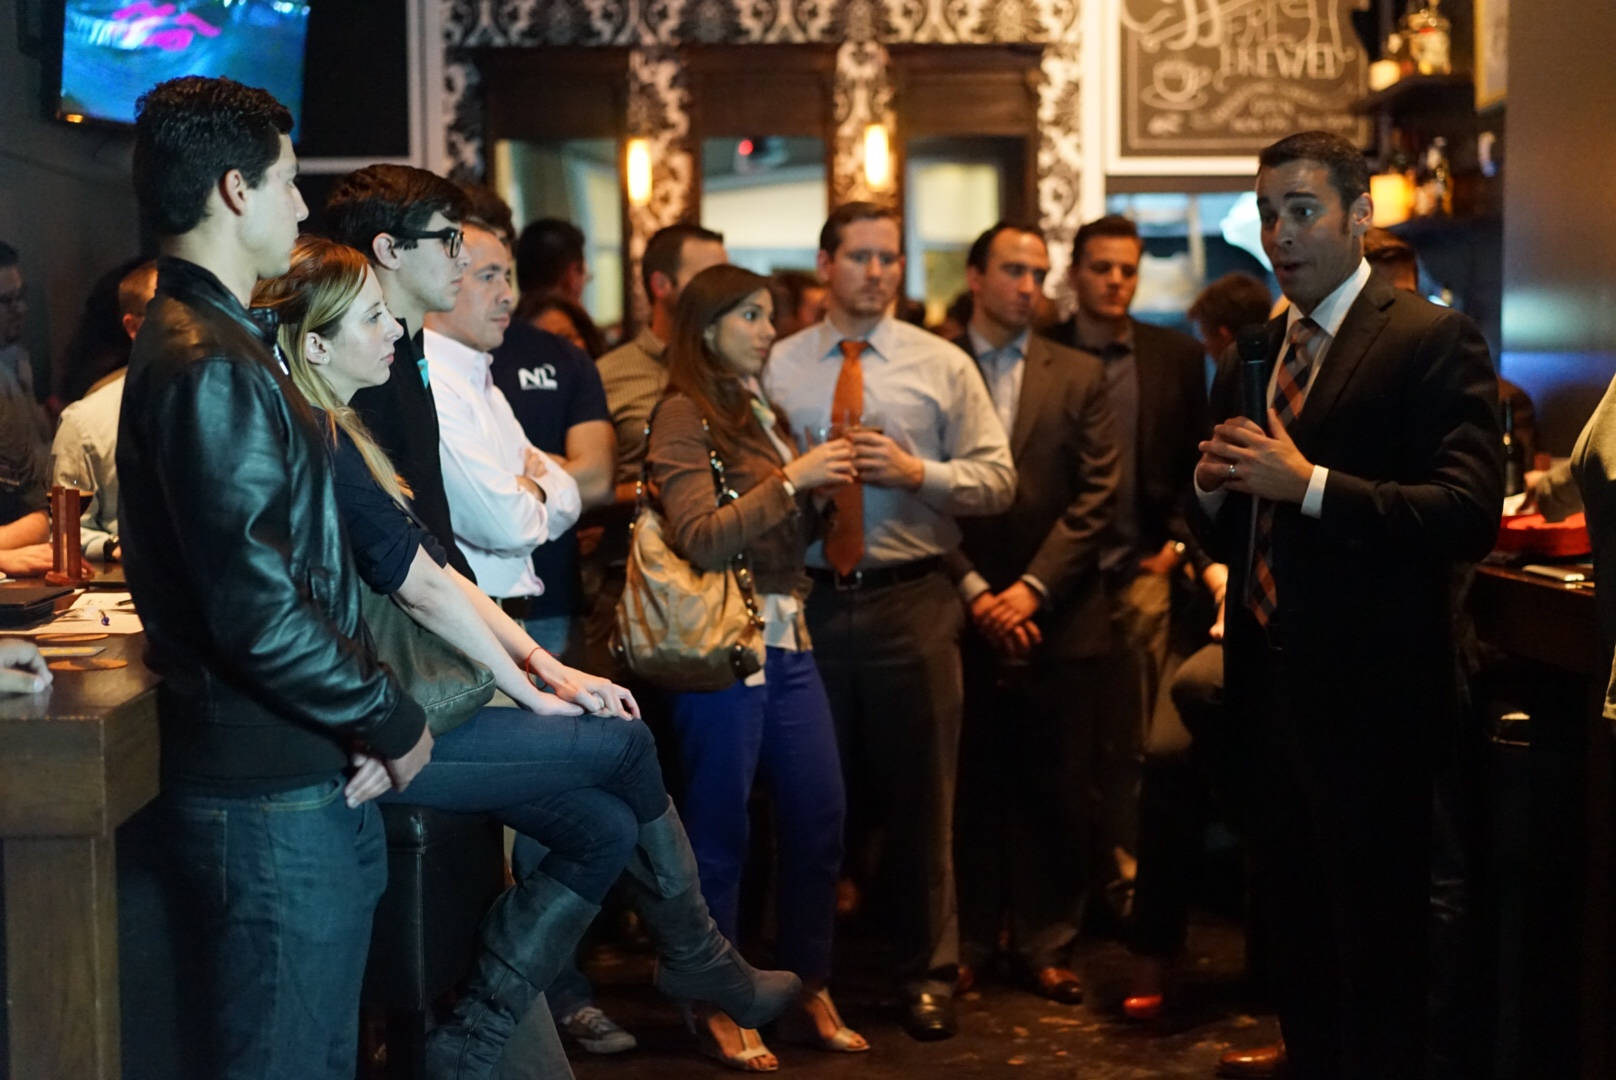 Representative Erik Fresen addressed the Miami Young Republican's Craft Beer Summit Attendees